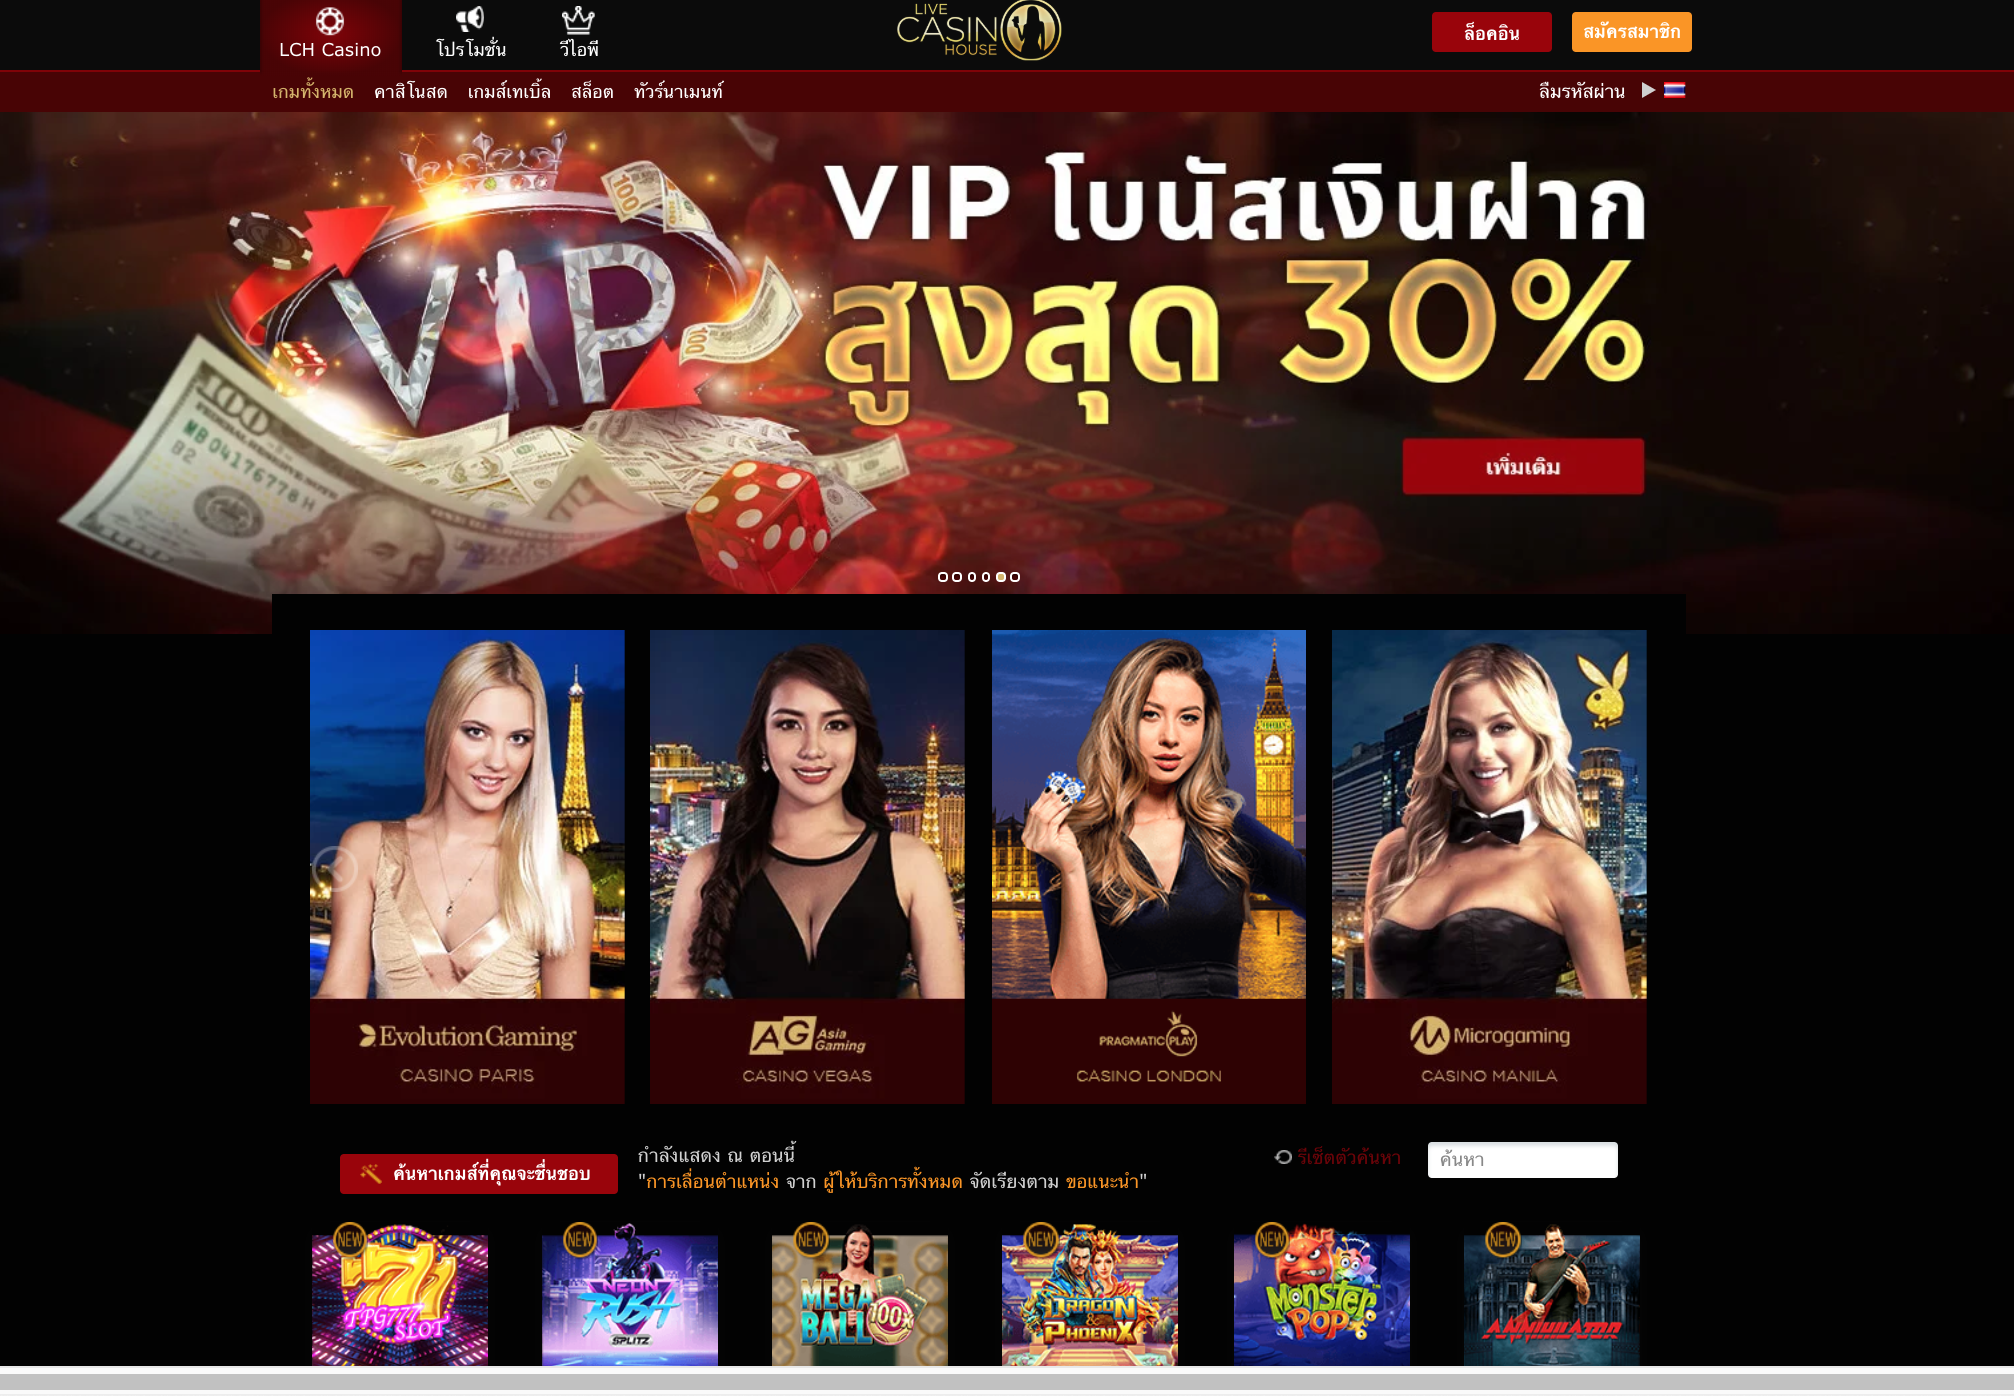 live casino house homepage